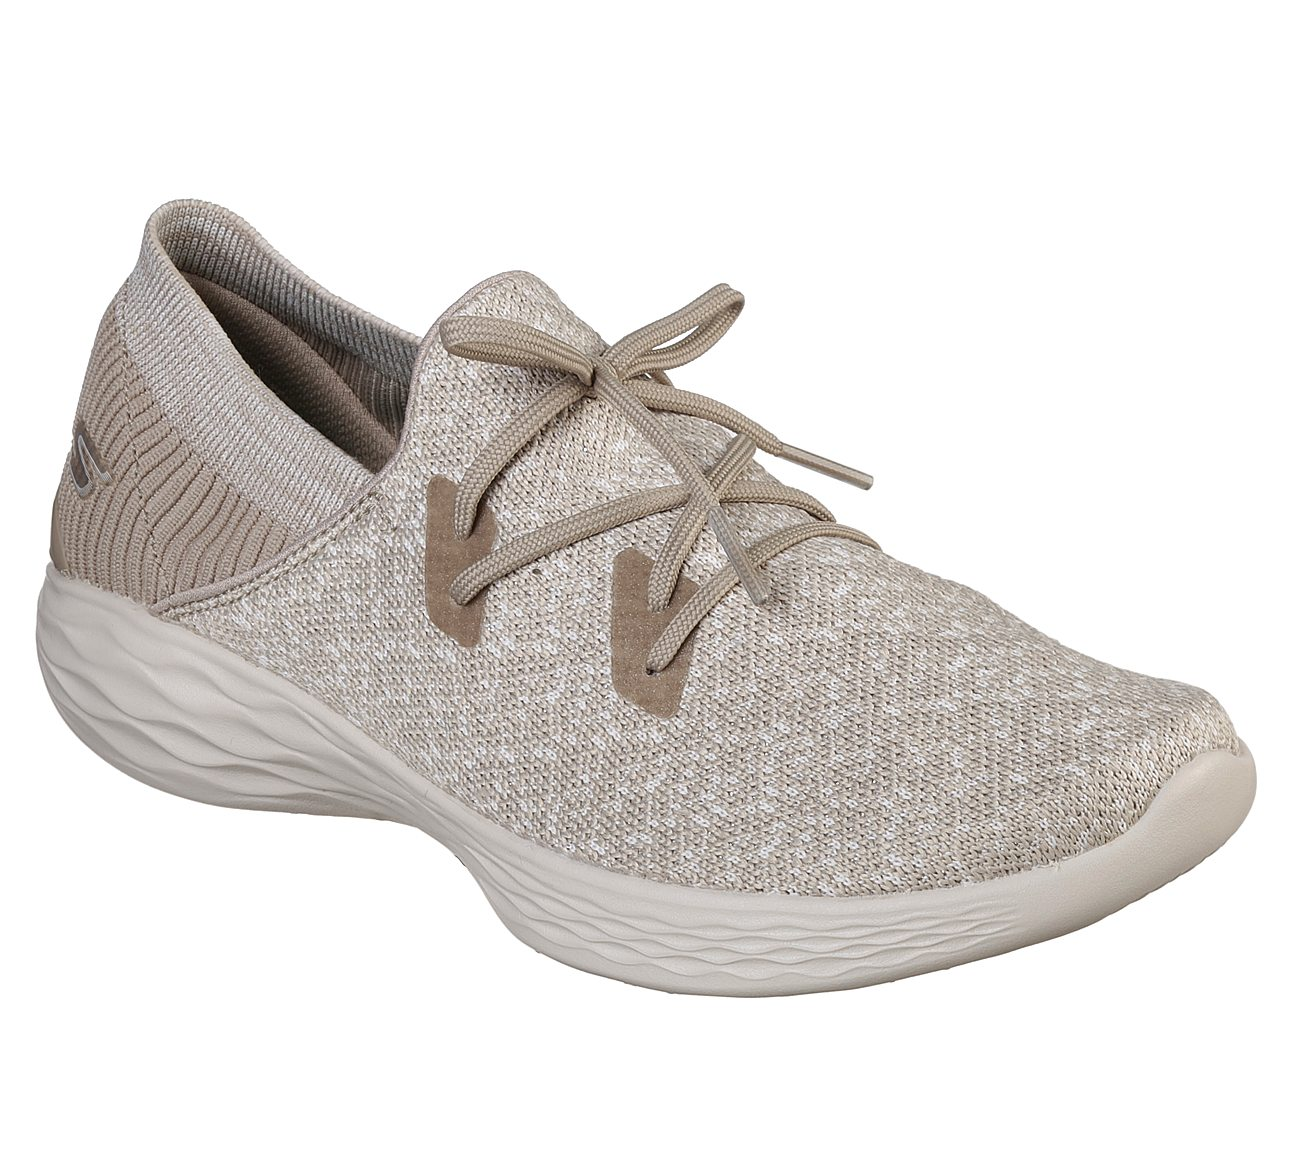 Exhale YOU by skechers Shoes